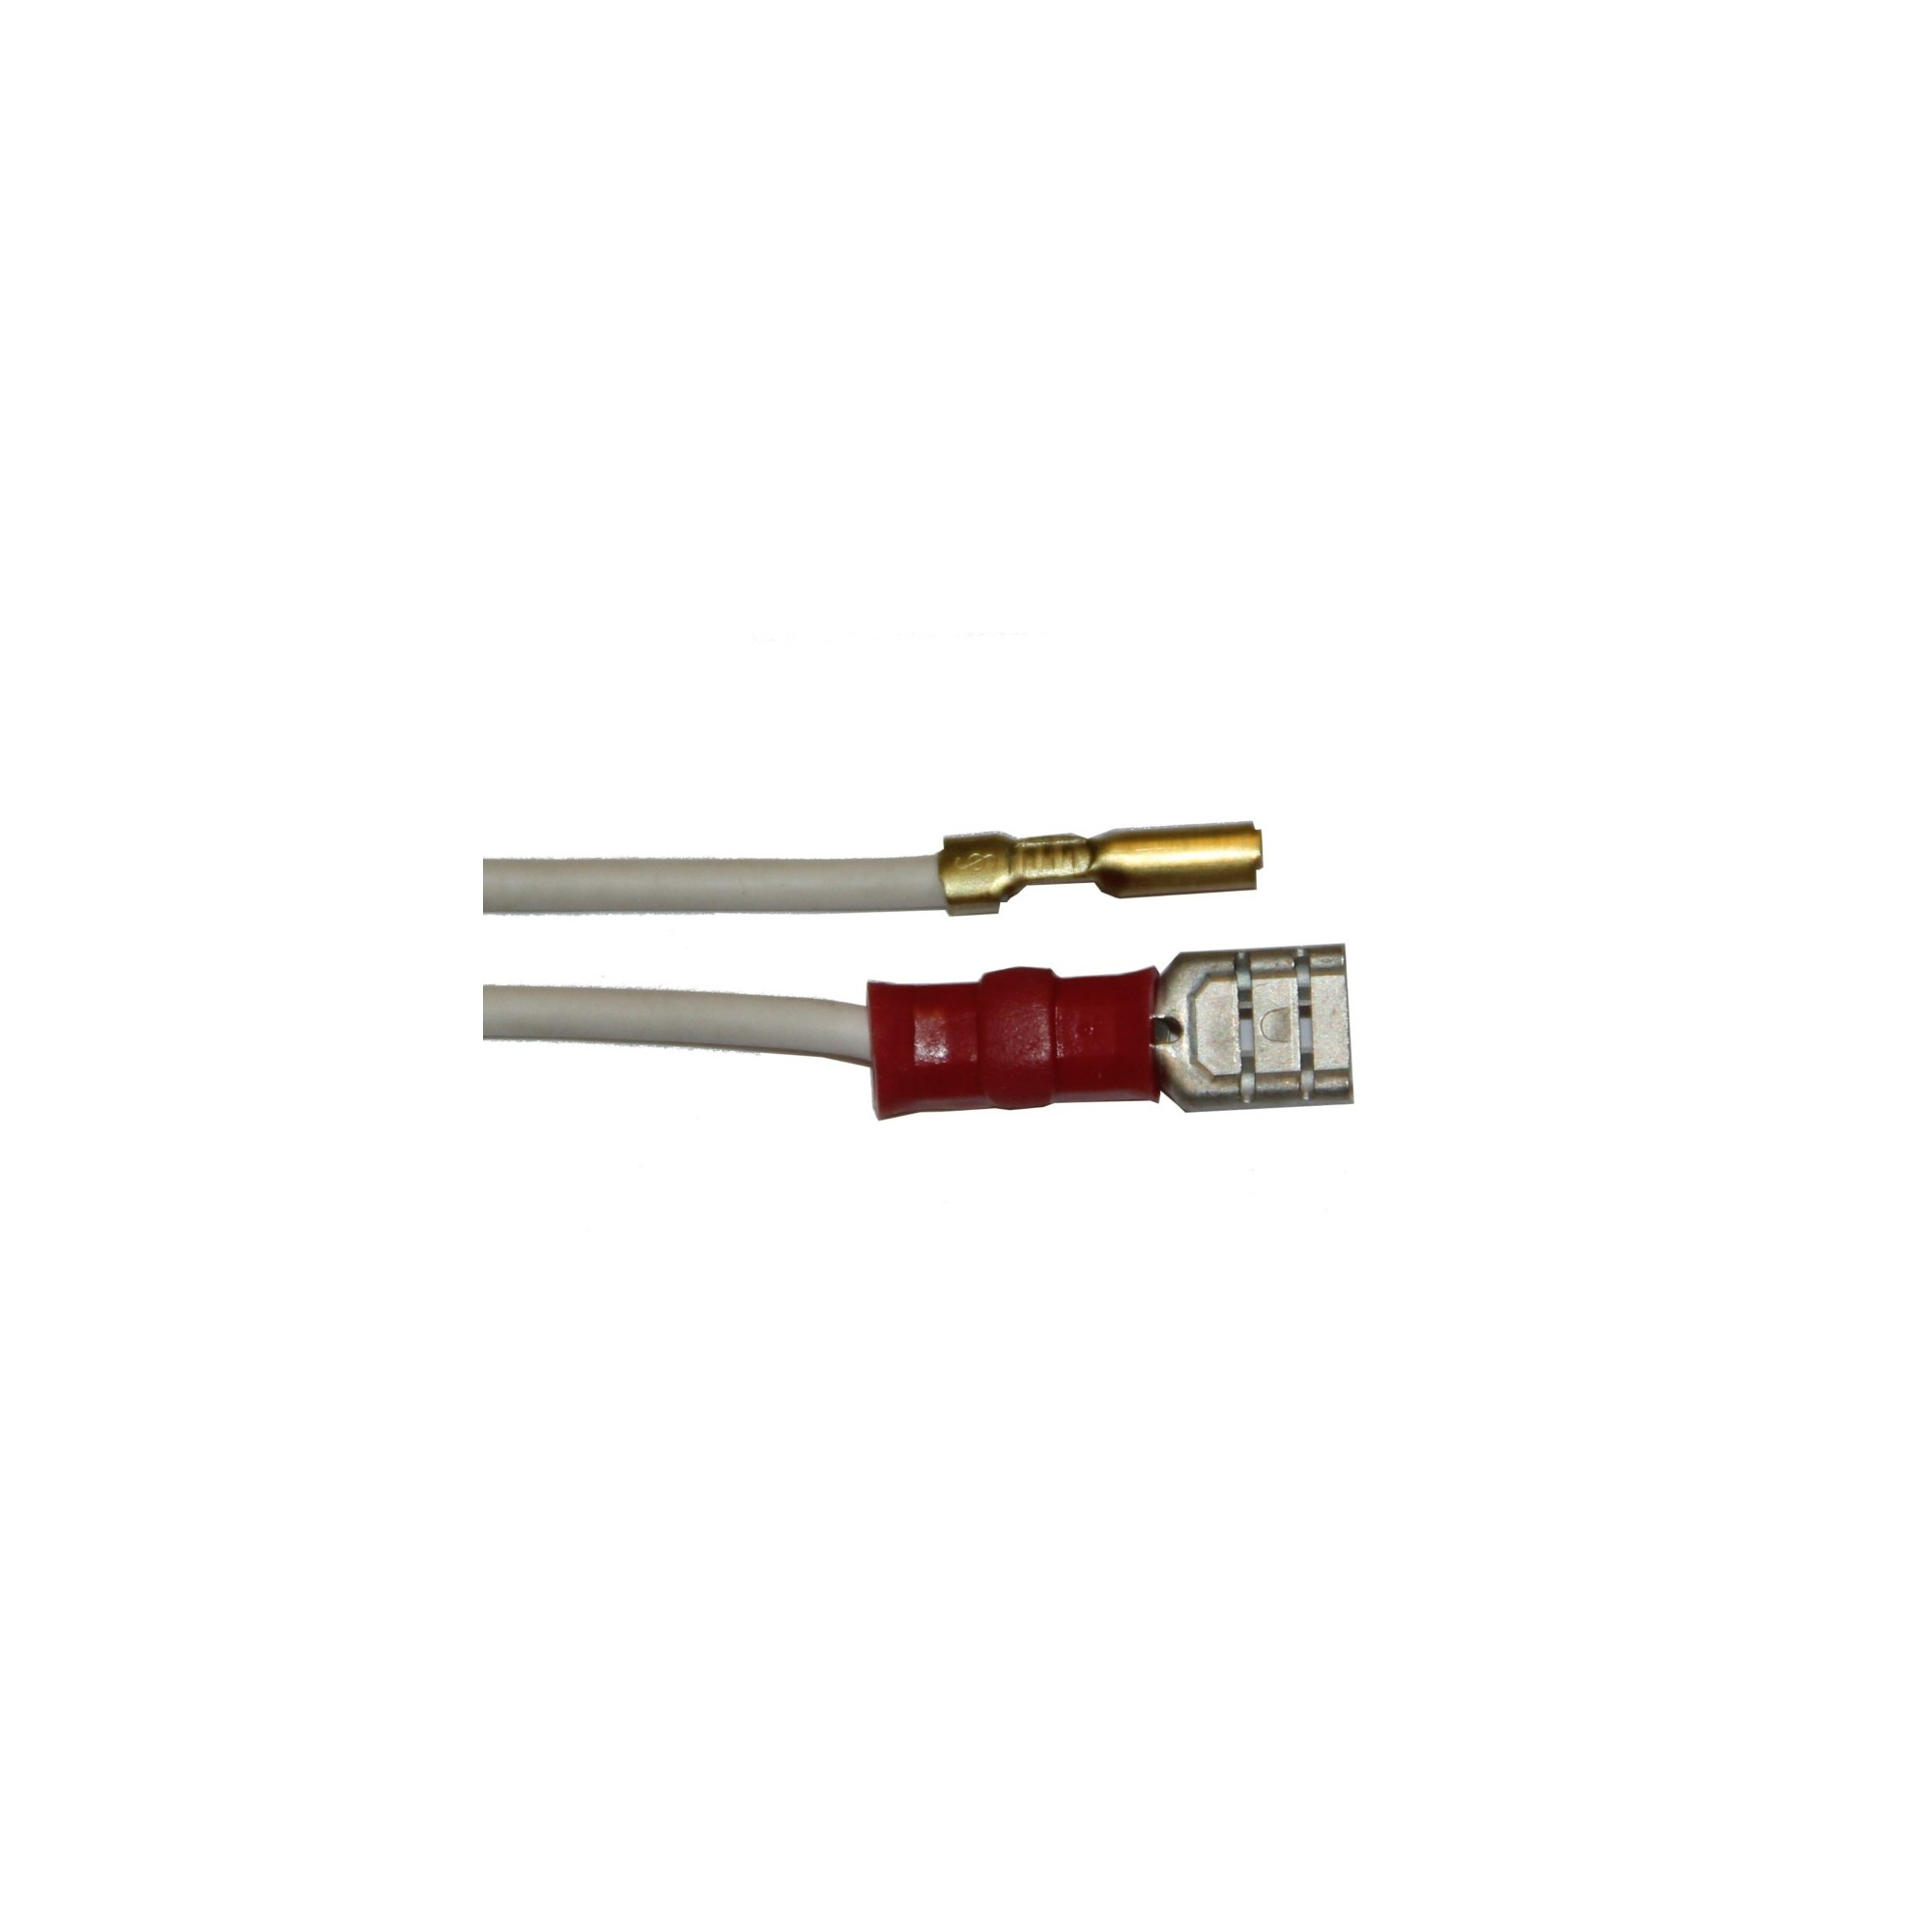 IONISATION CABLE 350MM